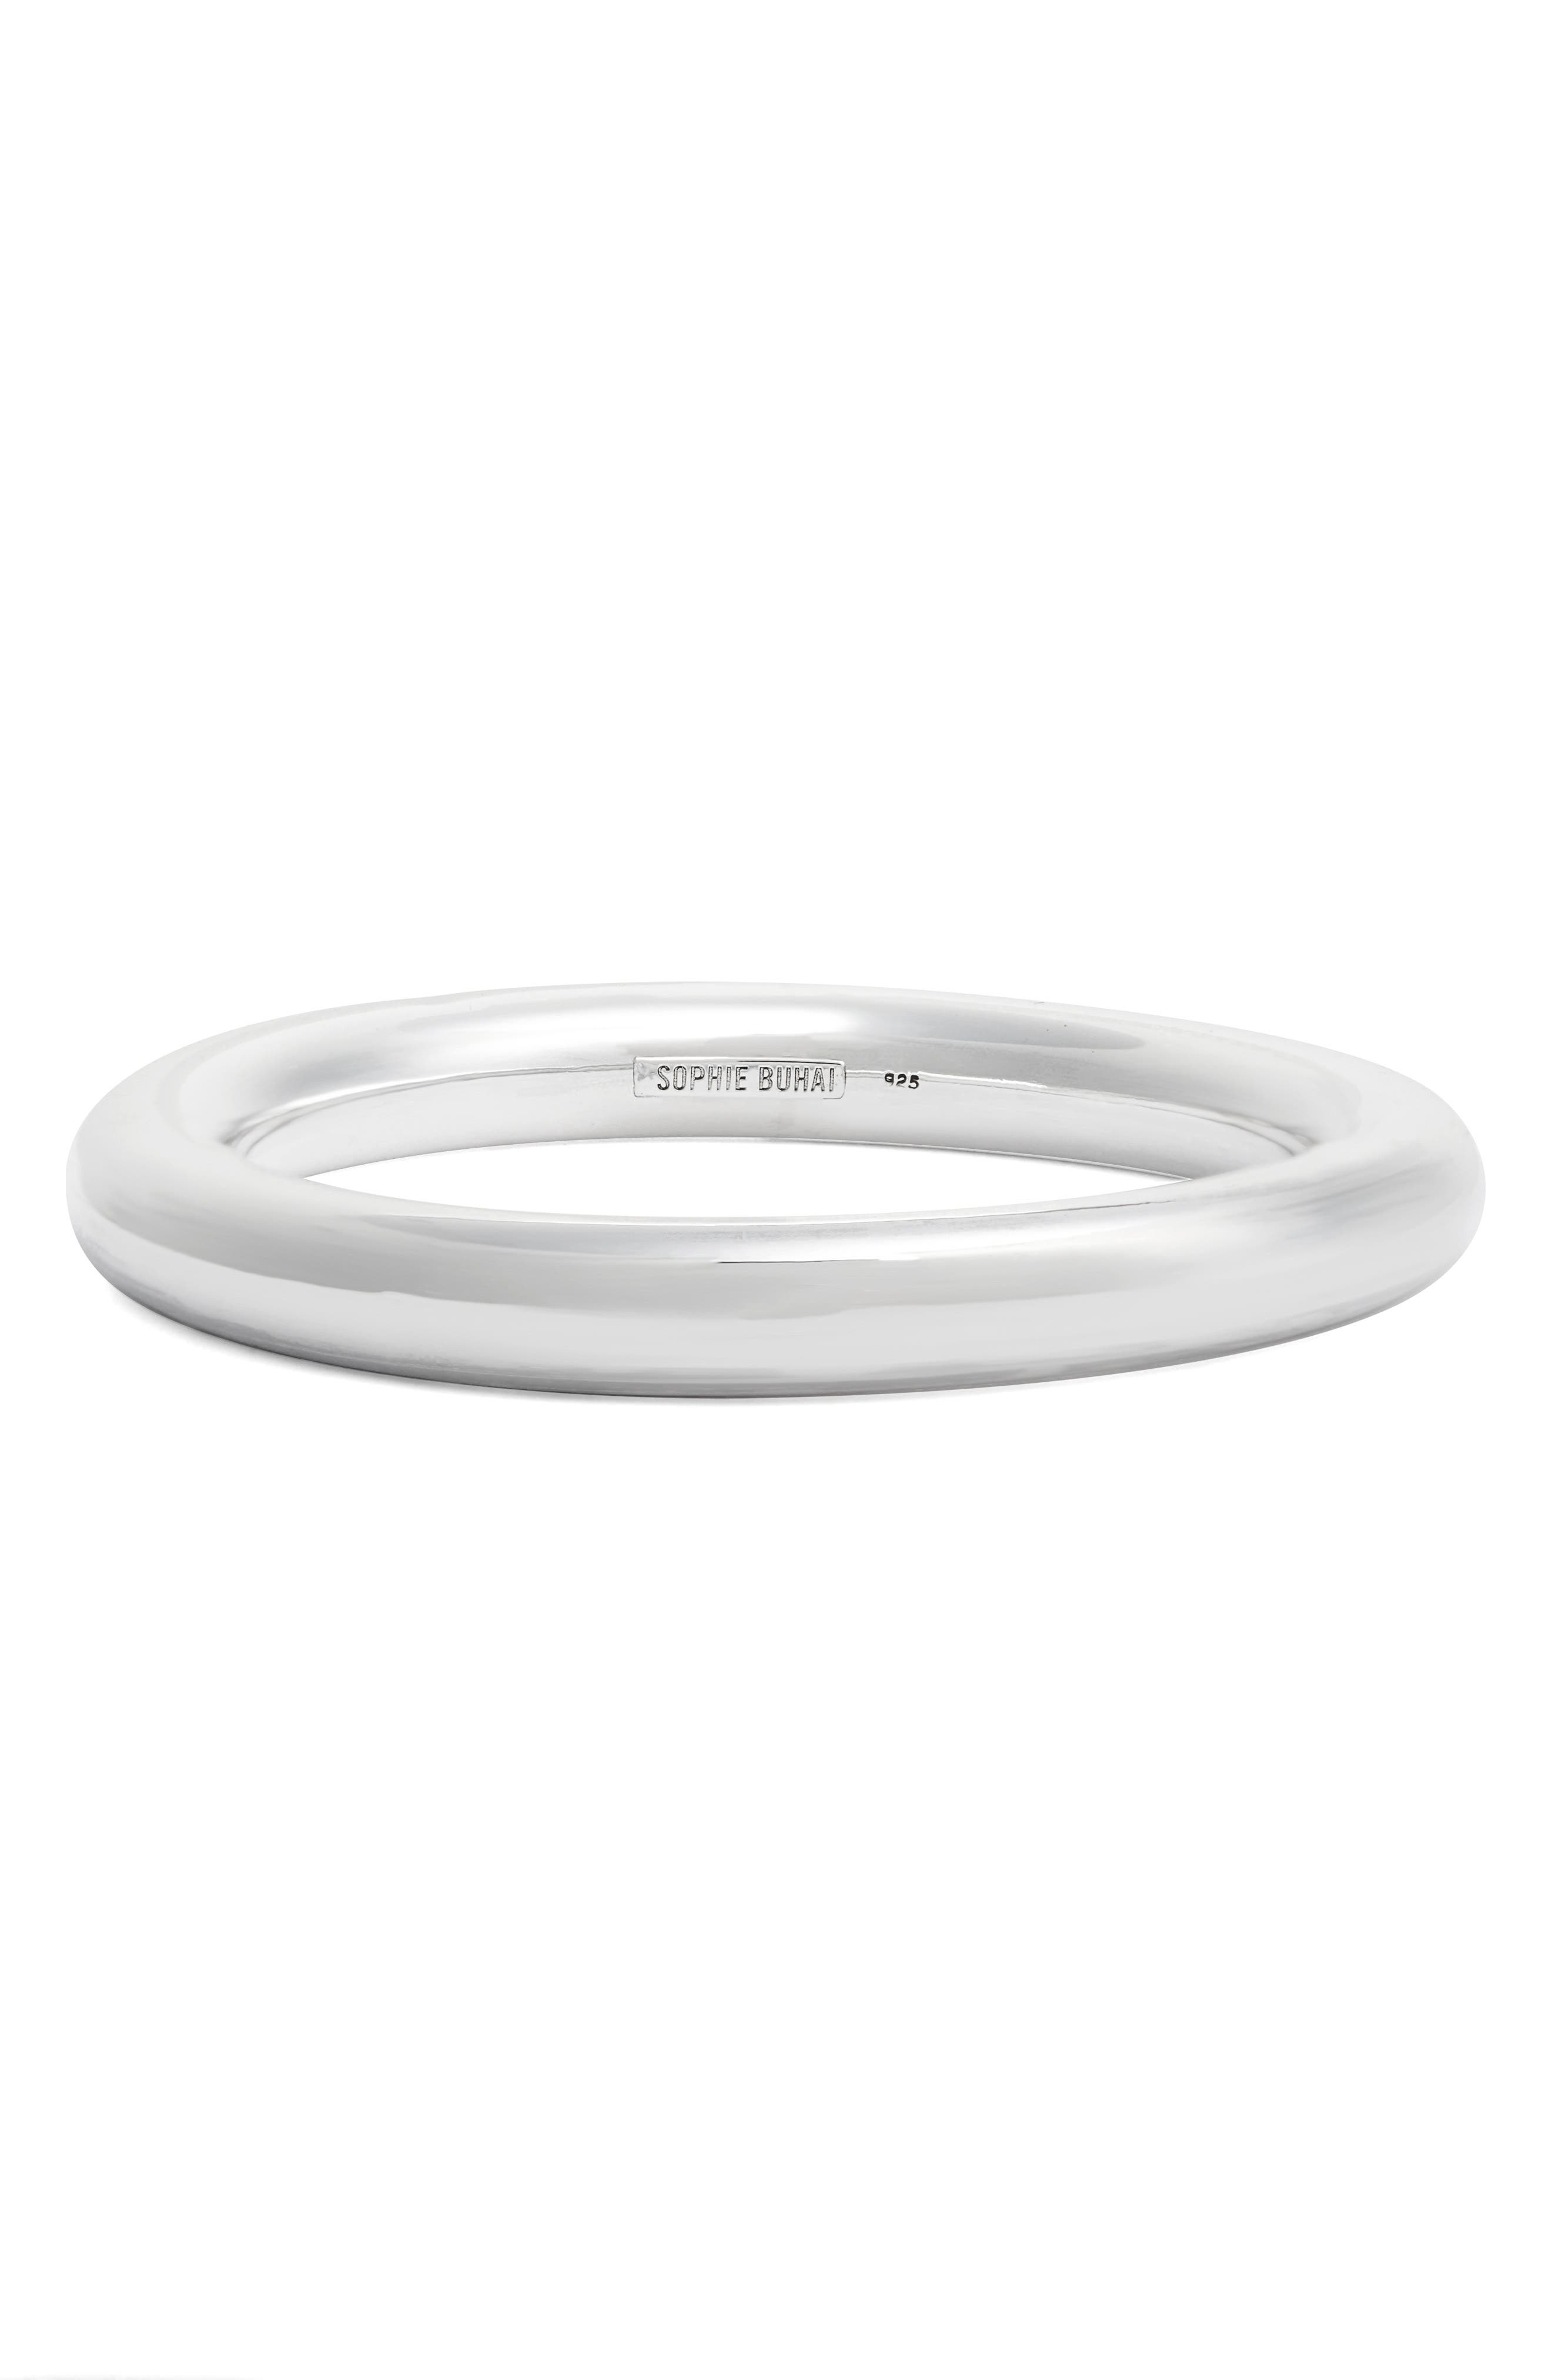 Classic Circle Bangle,                         Main,                         color, Sterling Silver